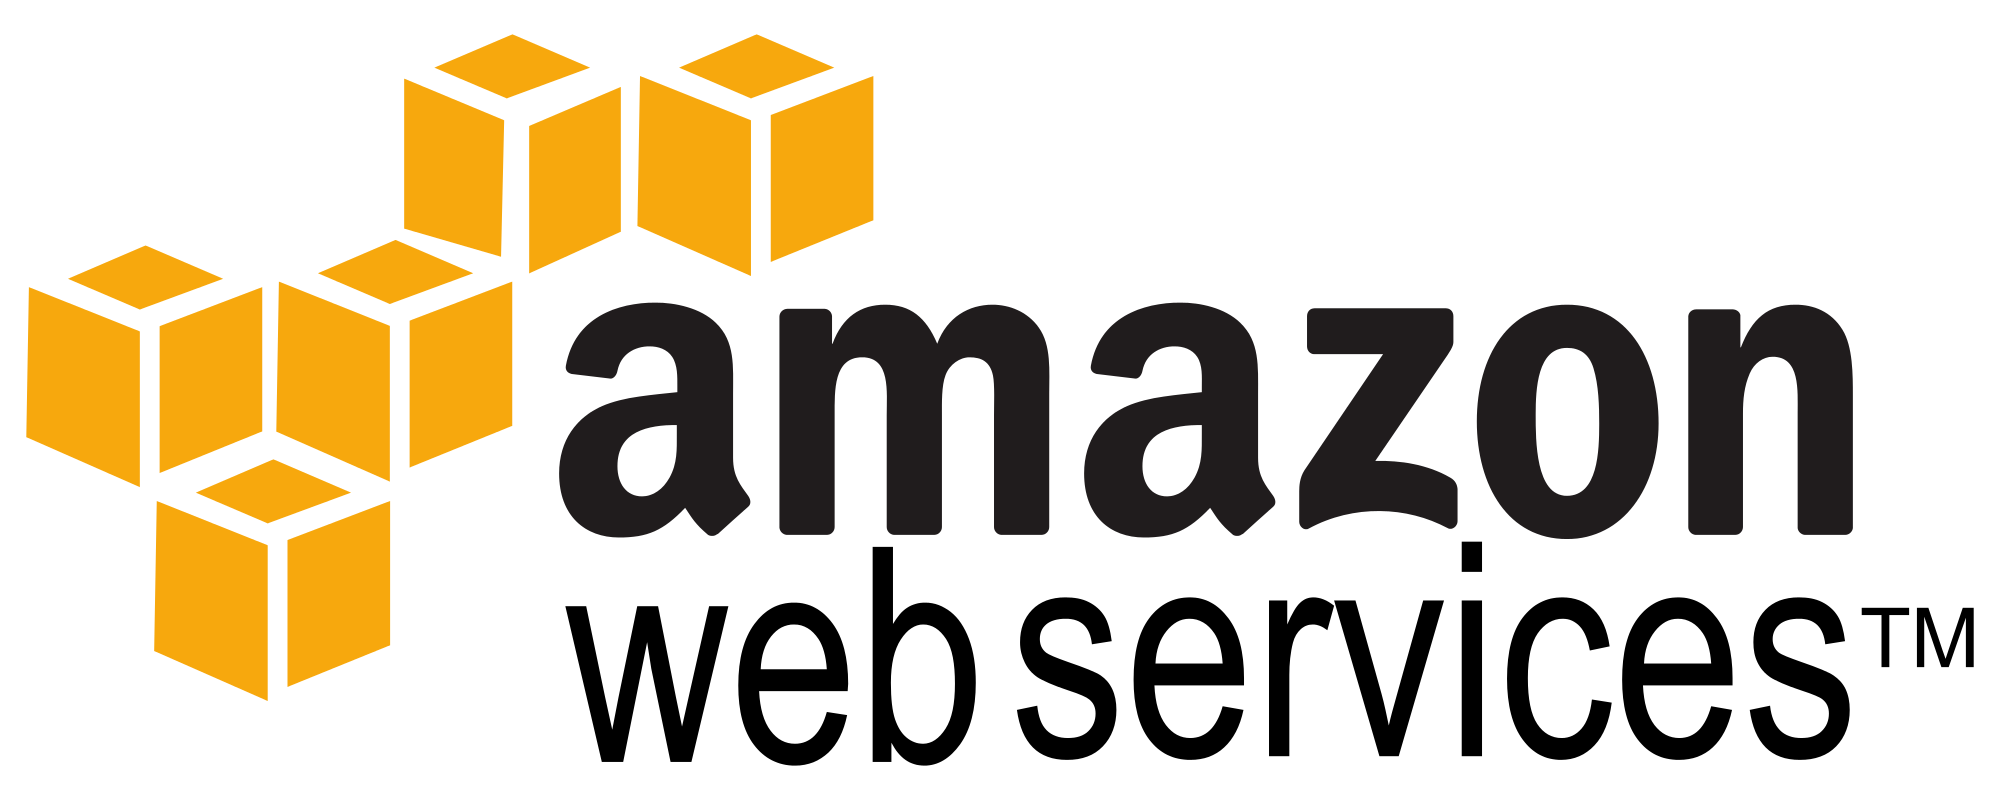 Amazon web services logo png. The benefits of mobile